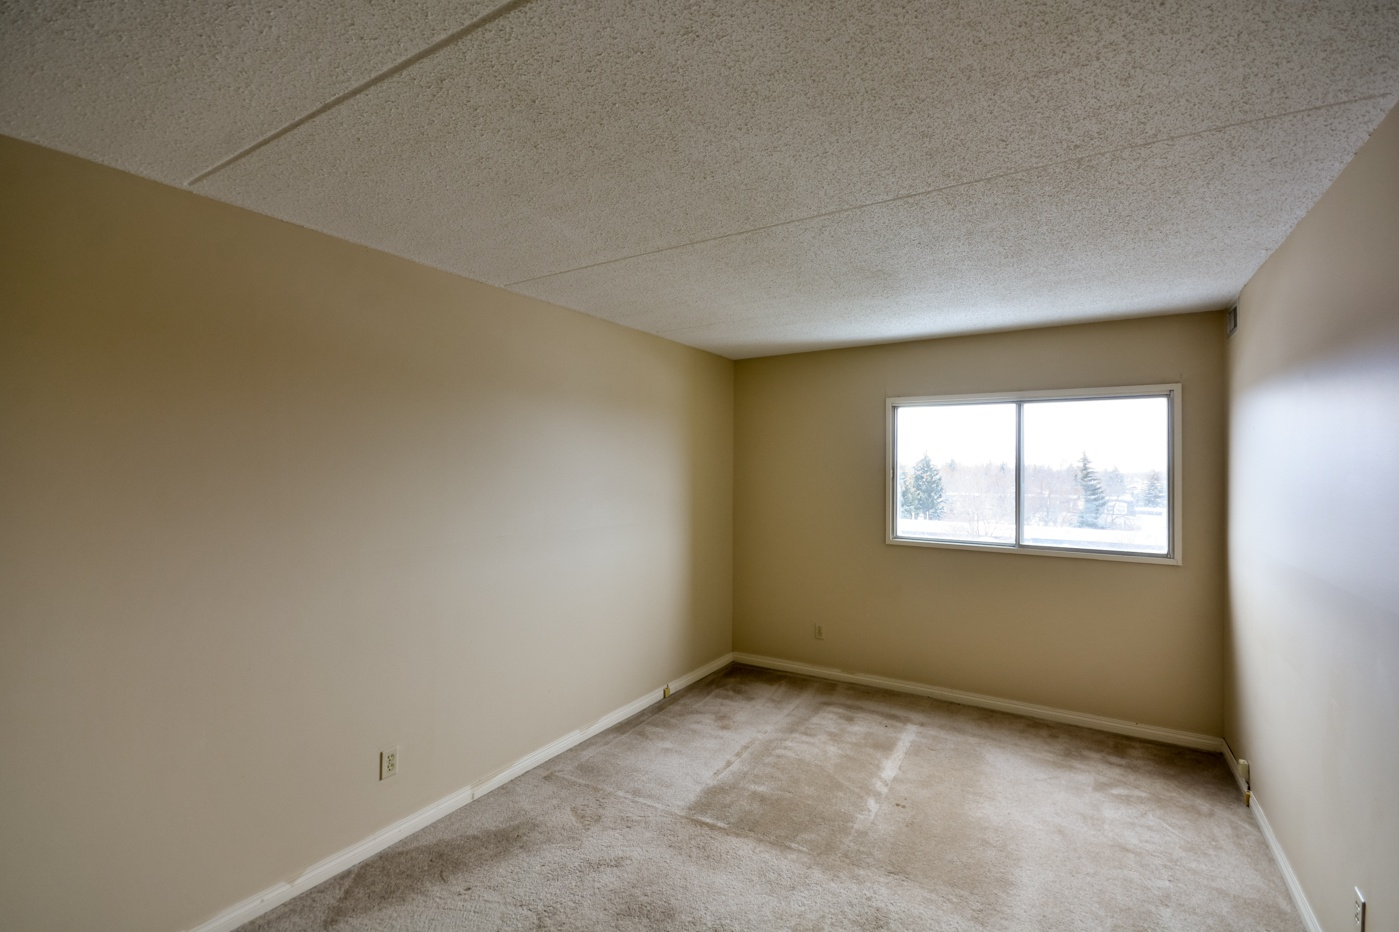 4040 Gordon Rd in Regina, SK is Now Available